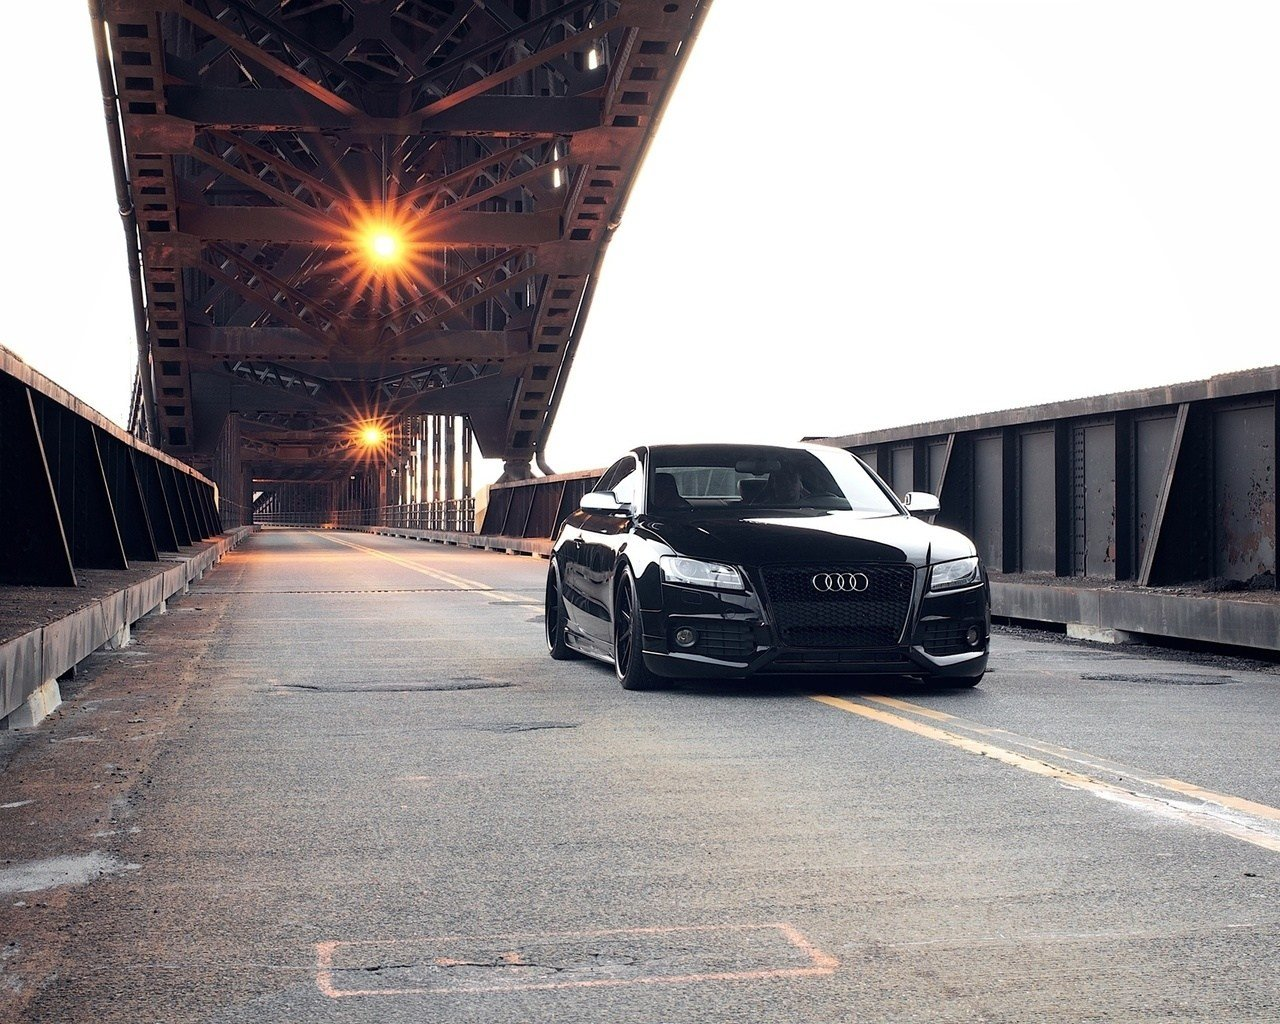 Latest 1280X1024 Cars Audi S5 Wallpapesr Audi Auto Wallpaper Free Download